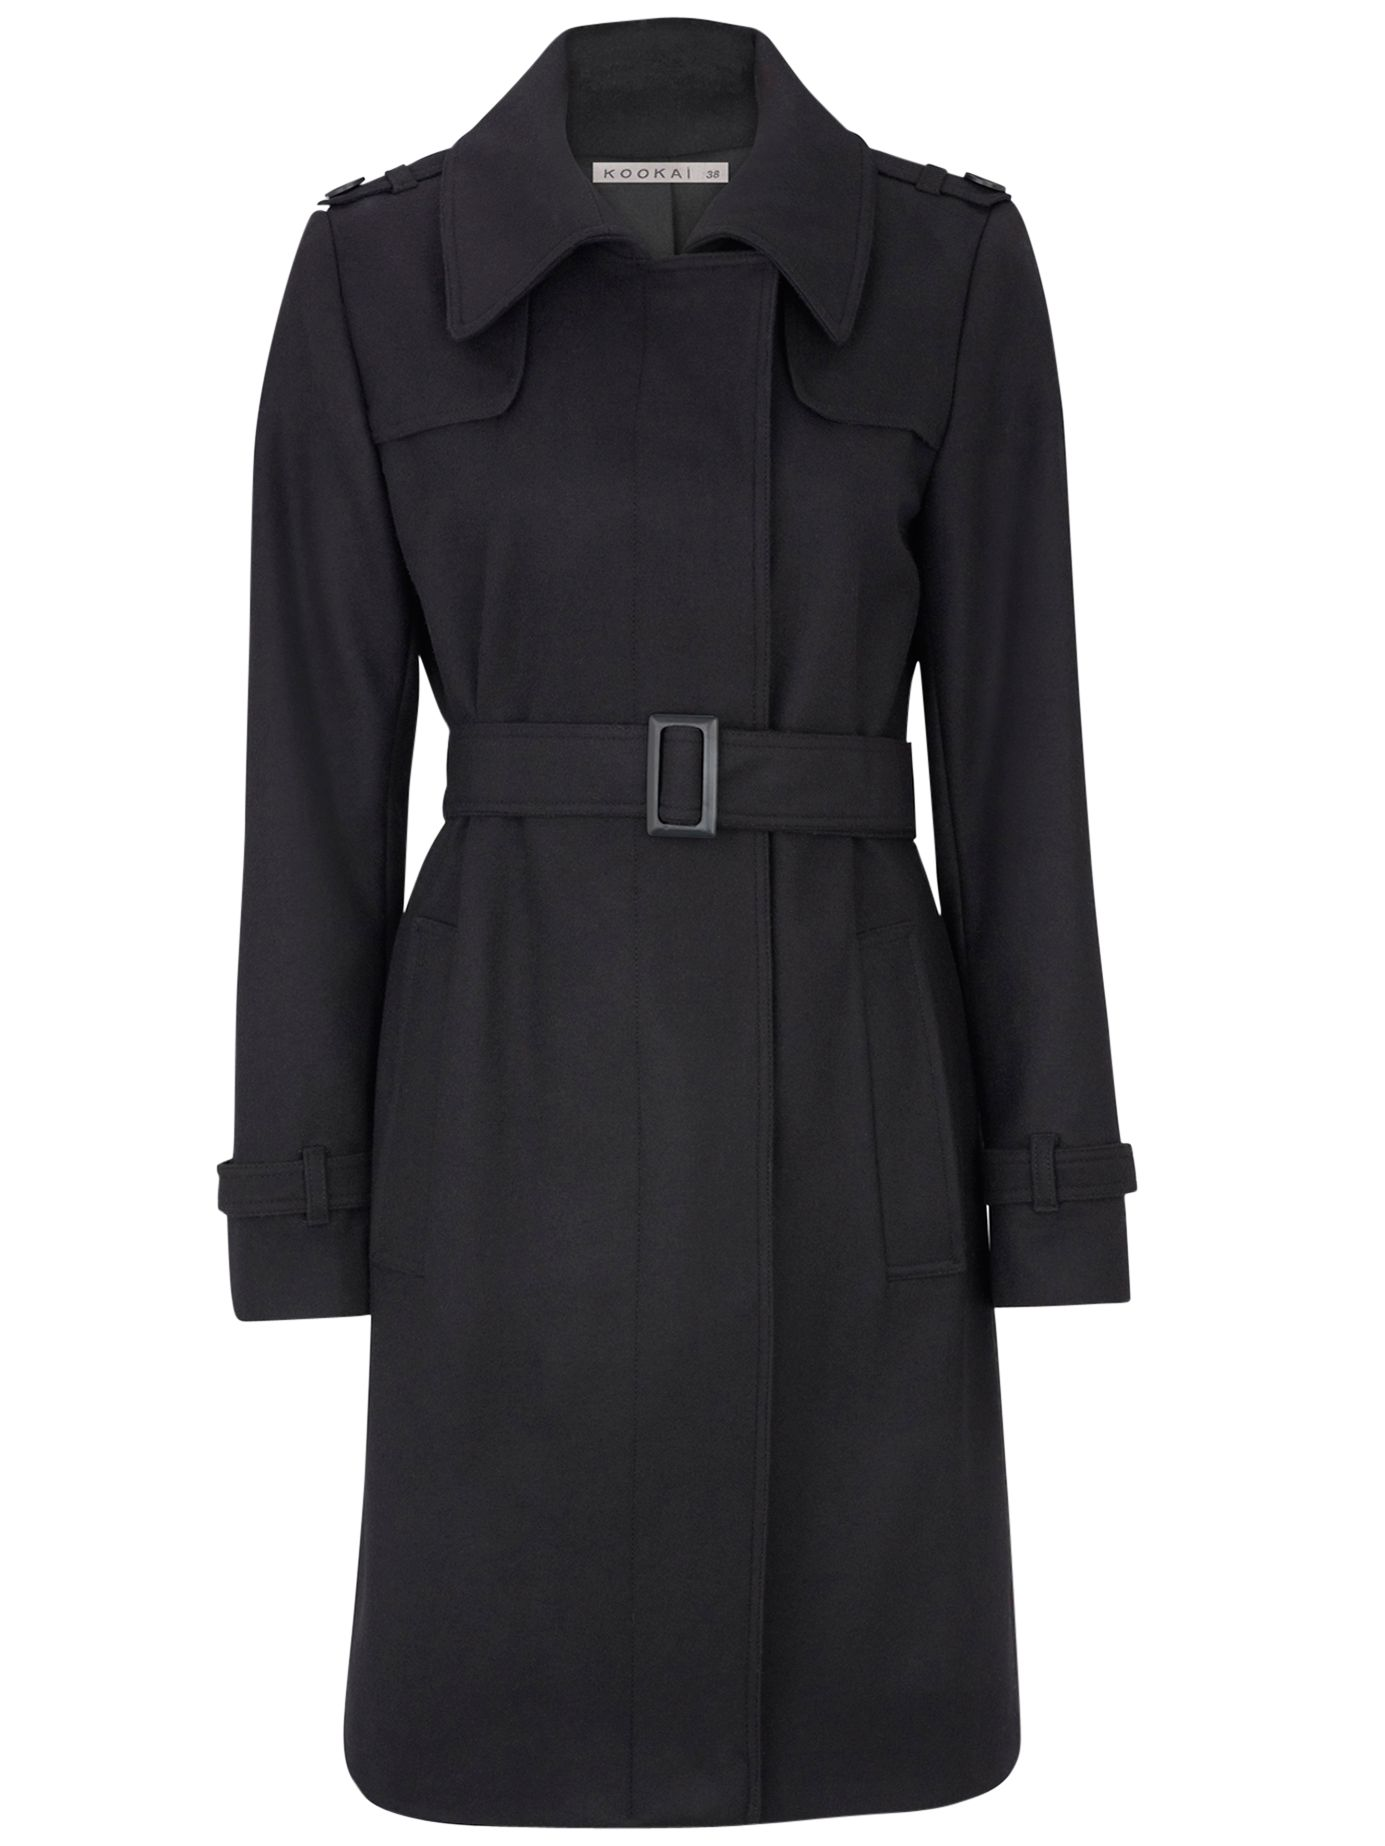 Kookai Belted Wool Trench Coat, Black at John Lewis